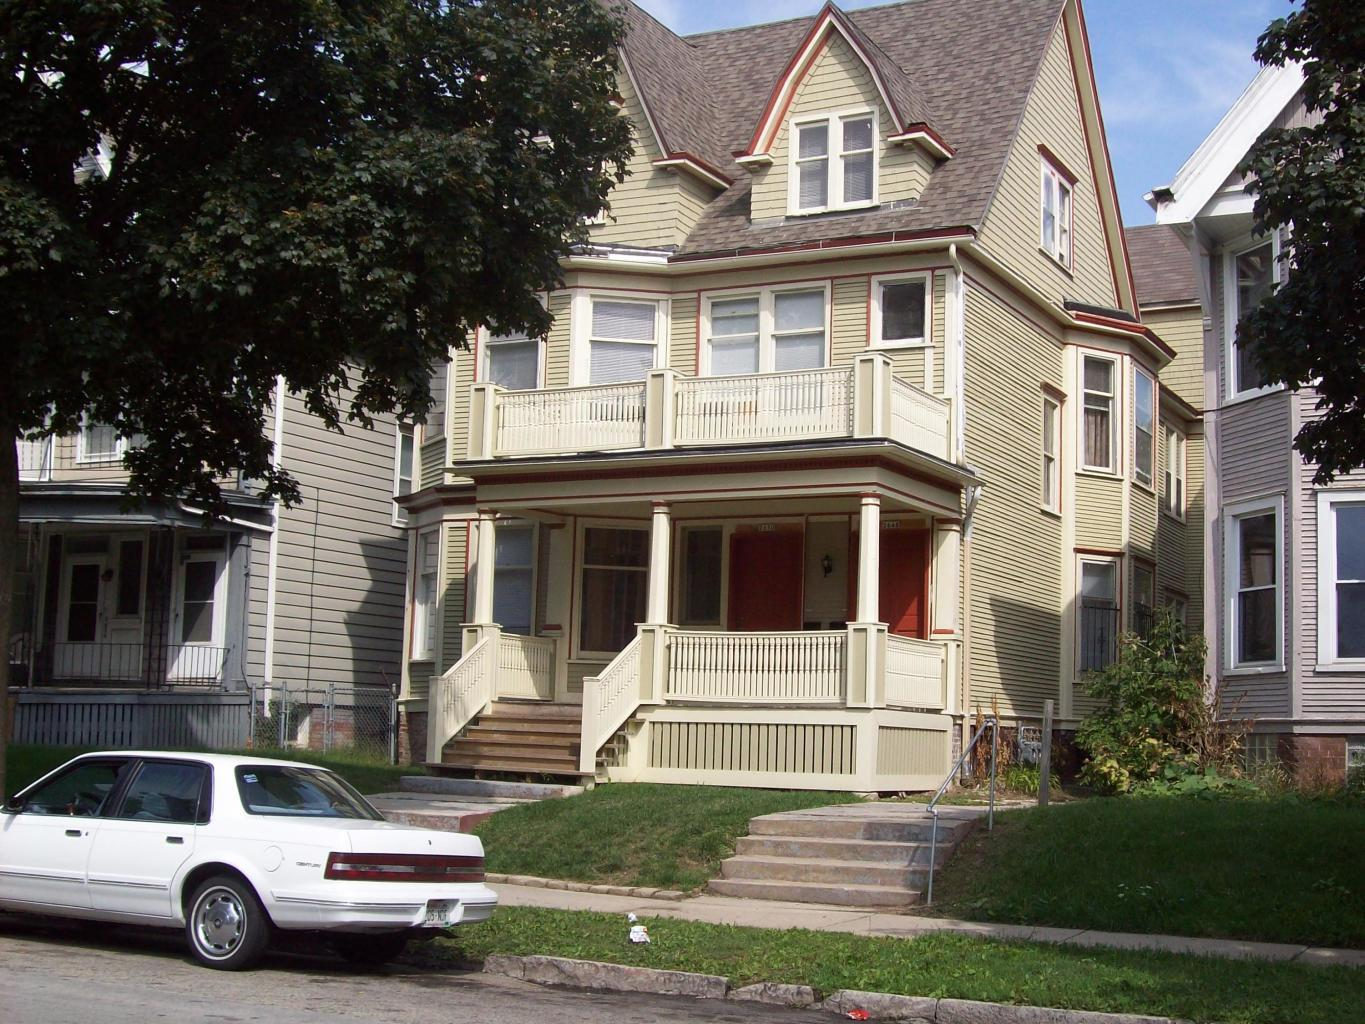 2648 2nd St, 2650, 2650A, Milwaukee, Wisconsin 53212, ,Multi-Family Investment,For Sale,2nd St, 2650, 2650A,1715654